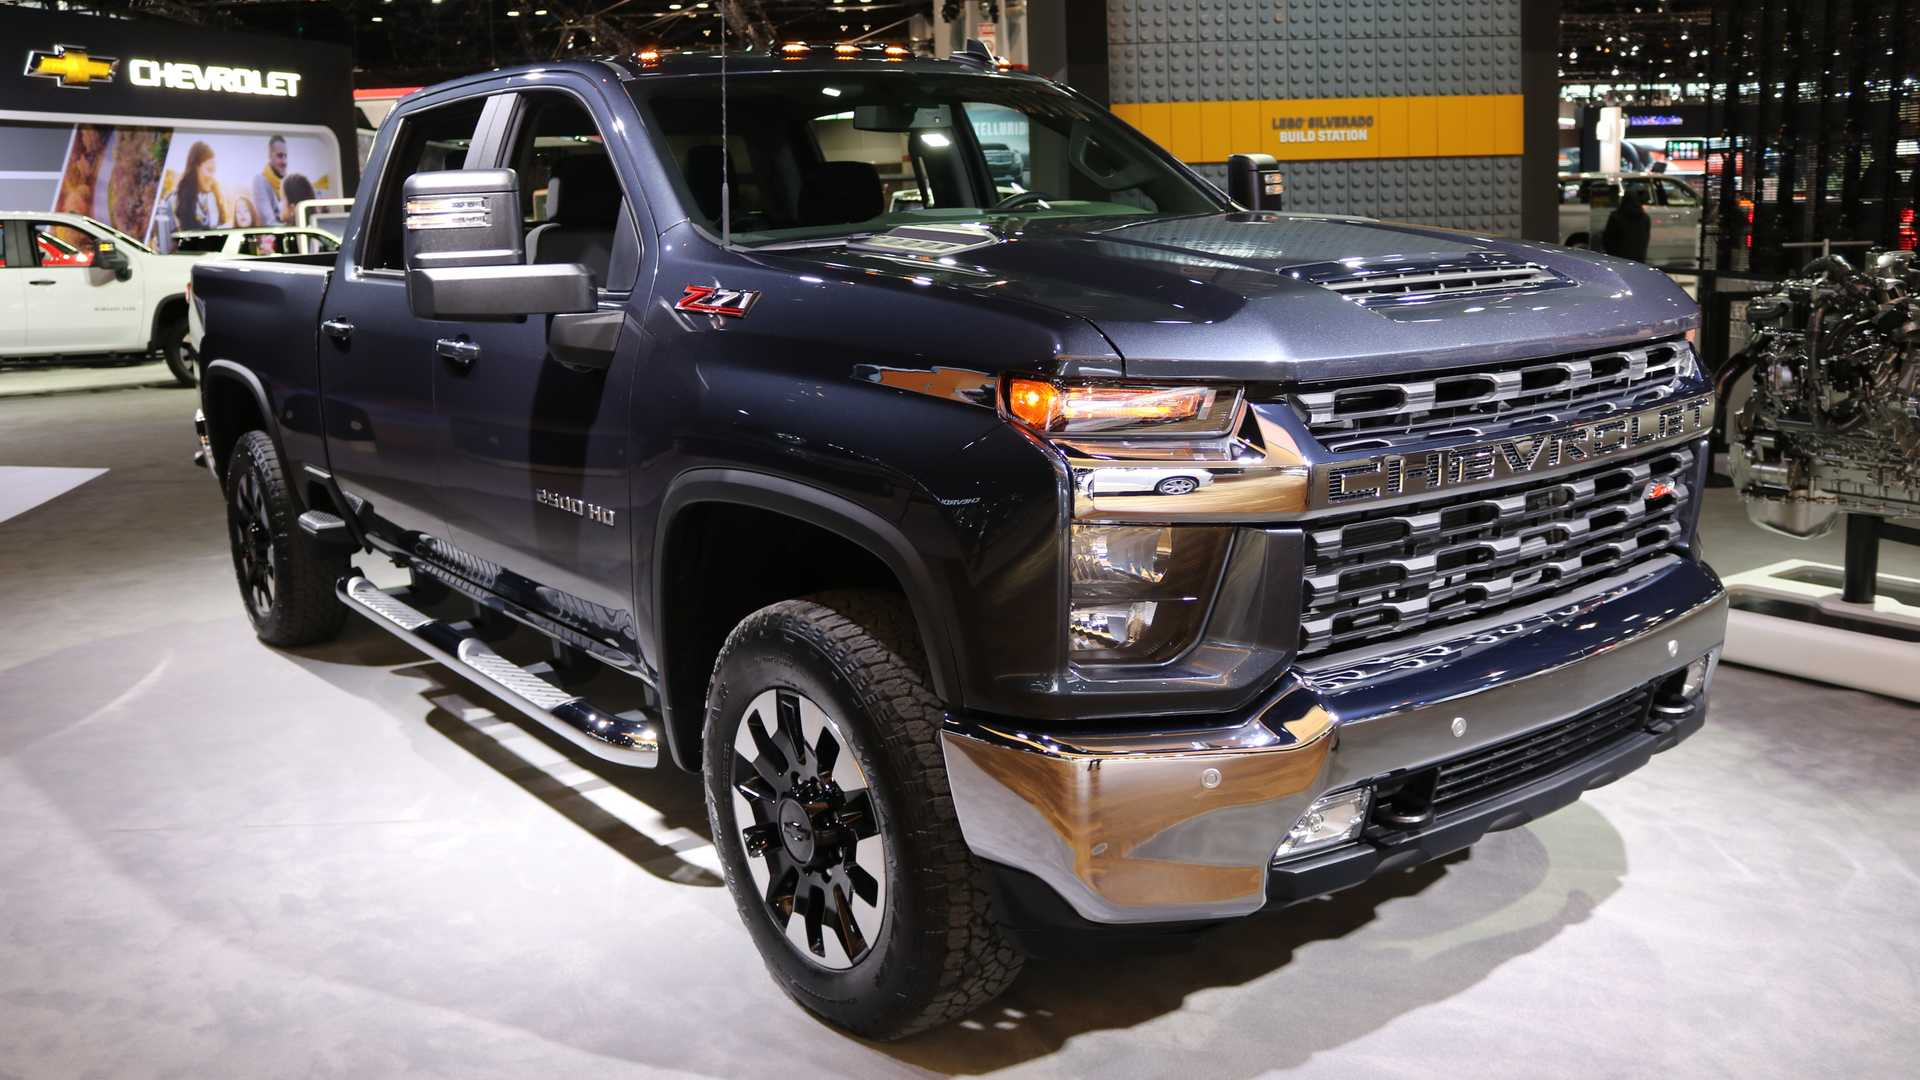 47 New 2020 Chevrolet Silverado Images New Model And Performance